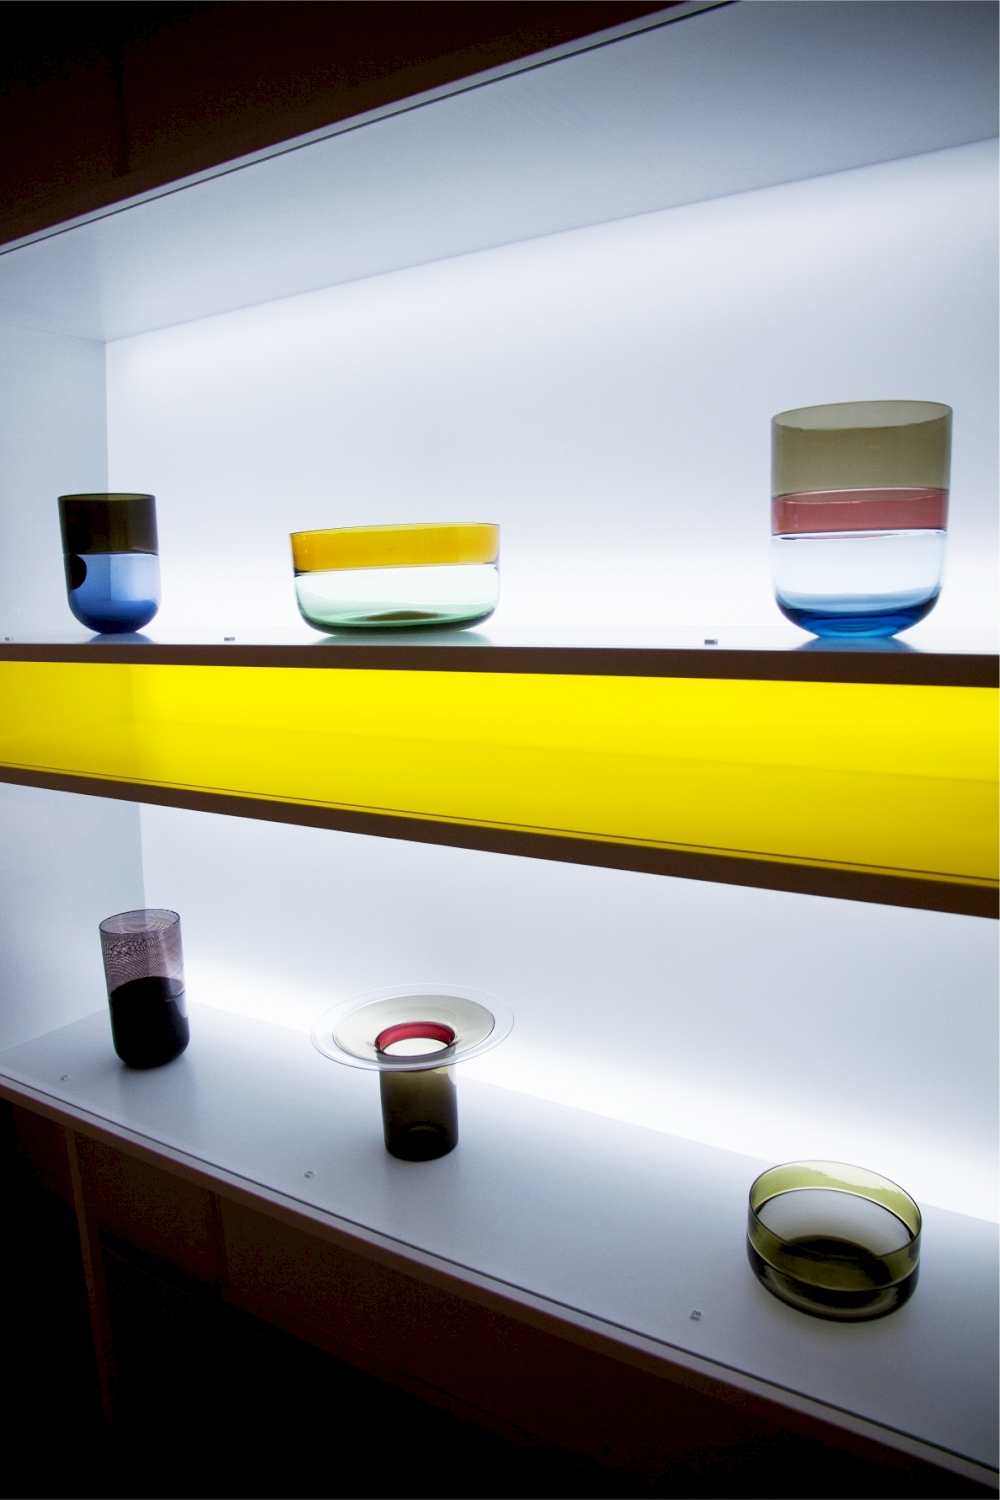 The colours of Venice exhibition Exhibition design. Designed for Tapio Wirkkala Rut Bryk Foundation by Mikko Laakkonen.